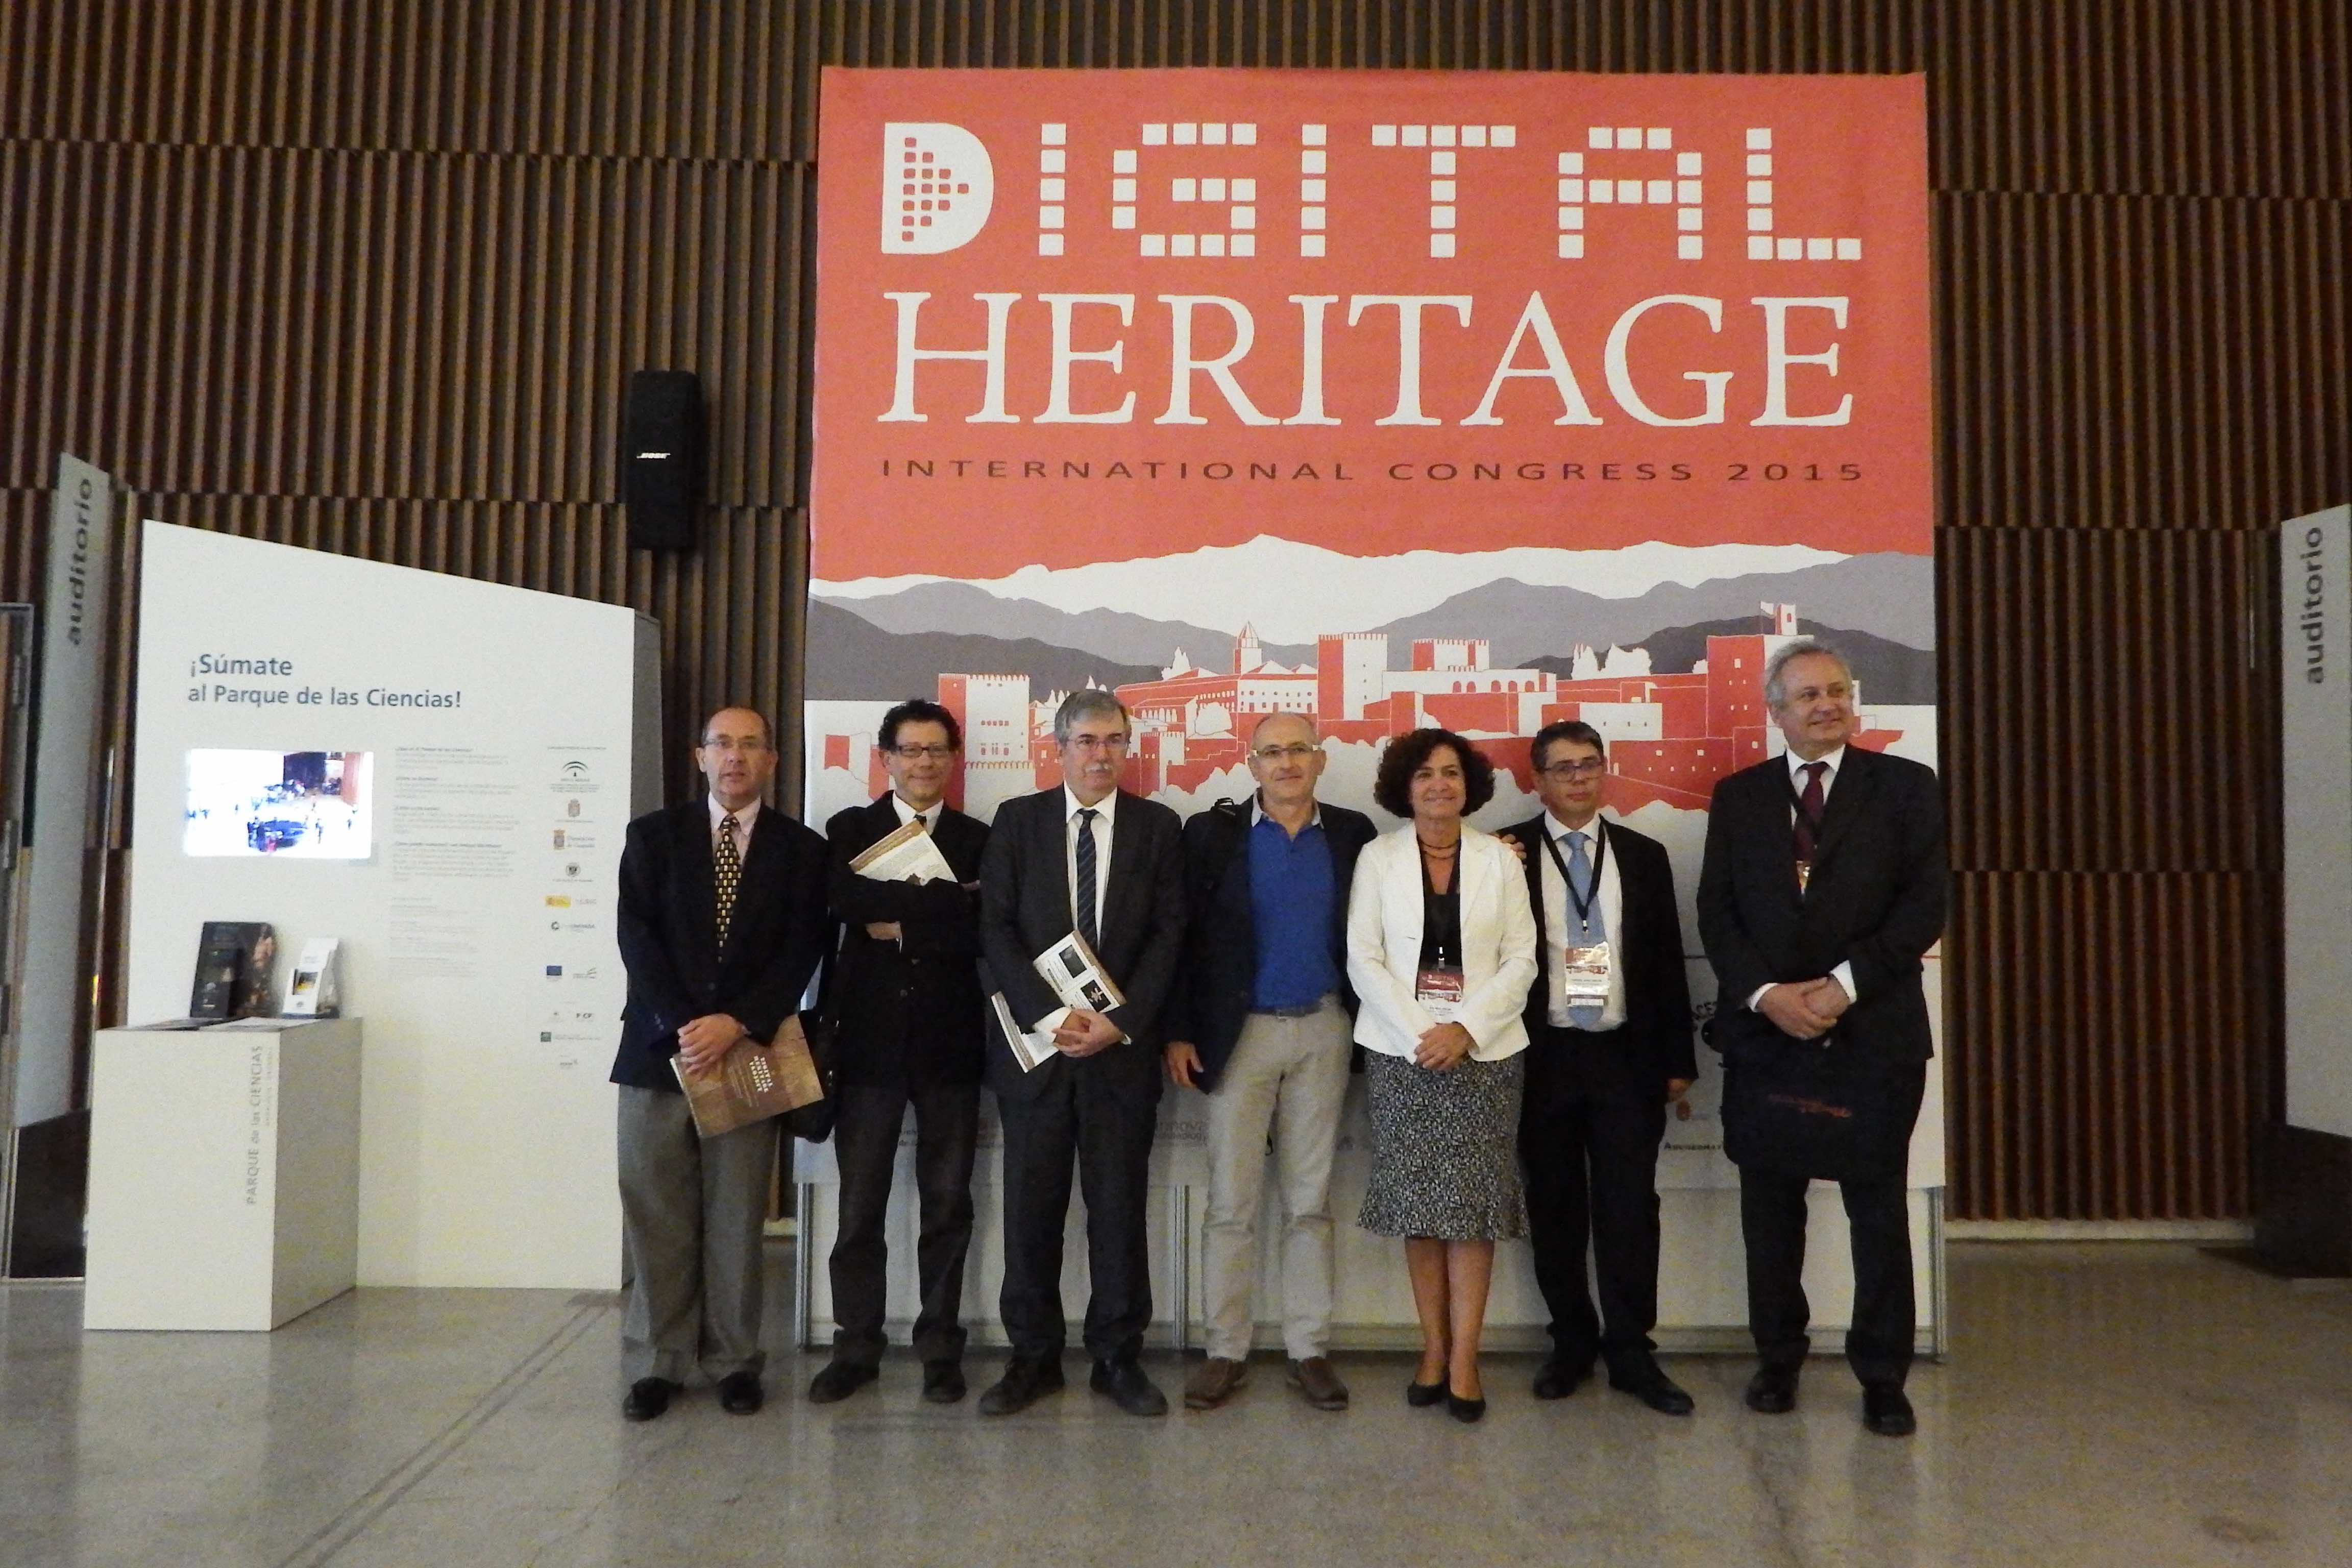 Specialists from 45 countries will be in Granada this week to discuss the combination of new technologies and cultural heritage